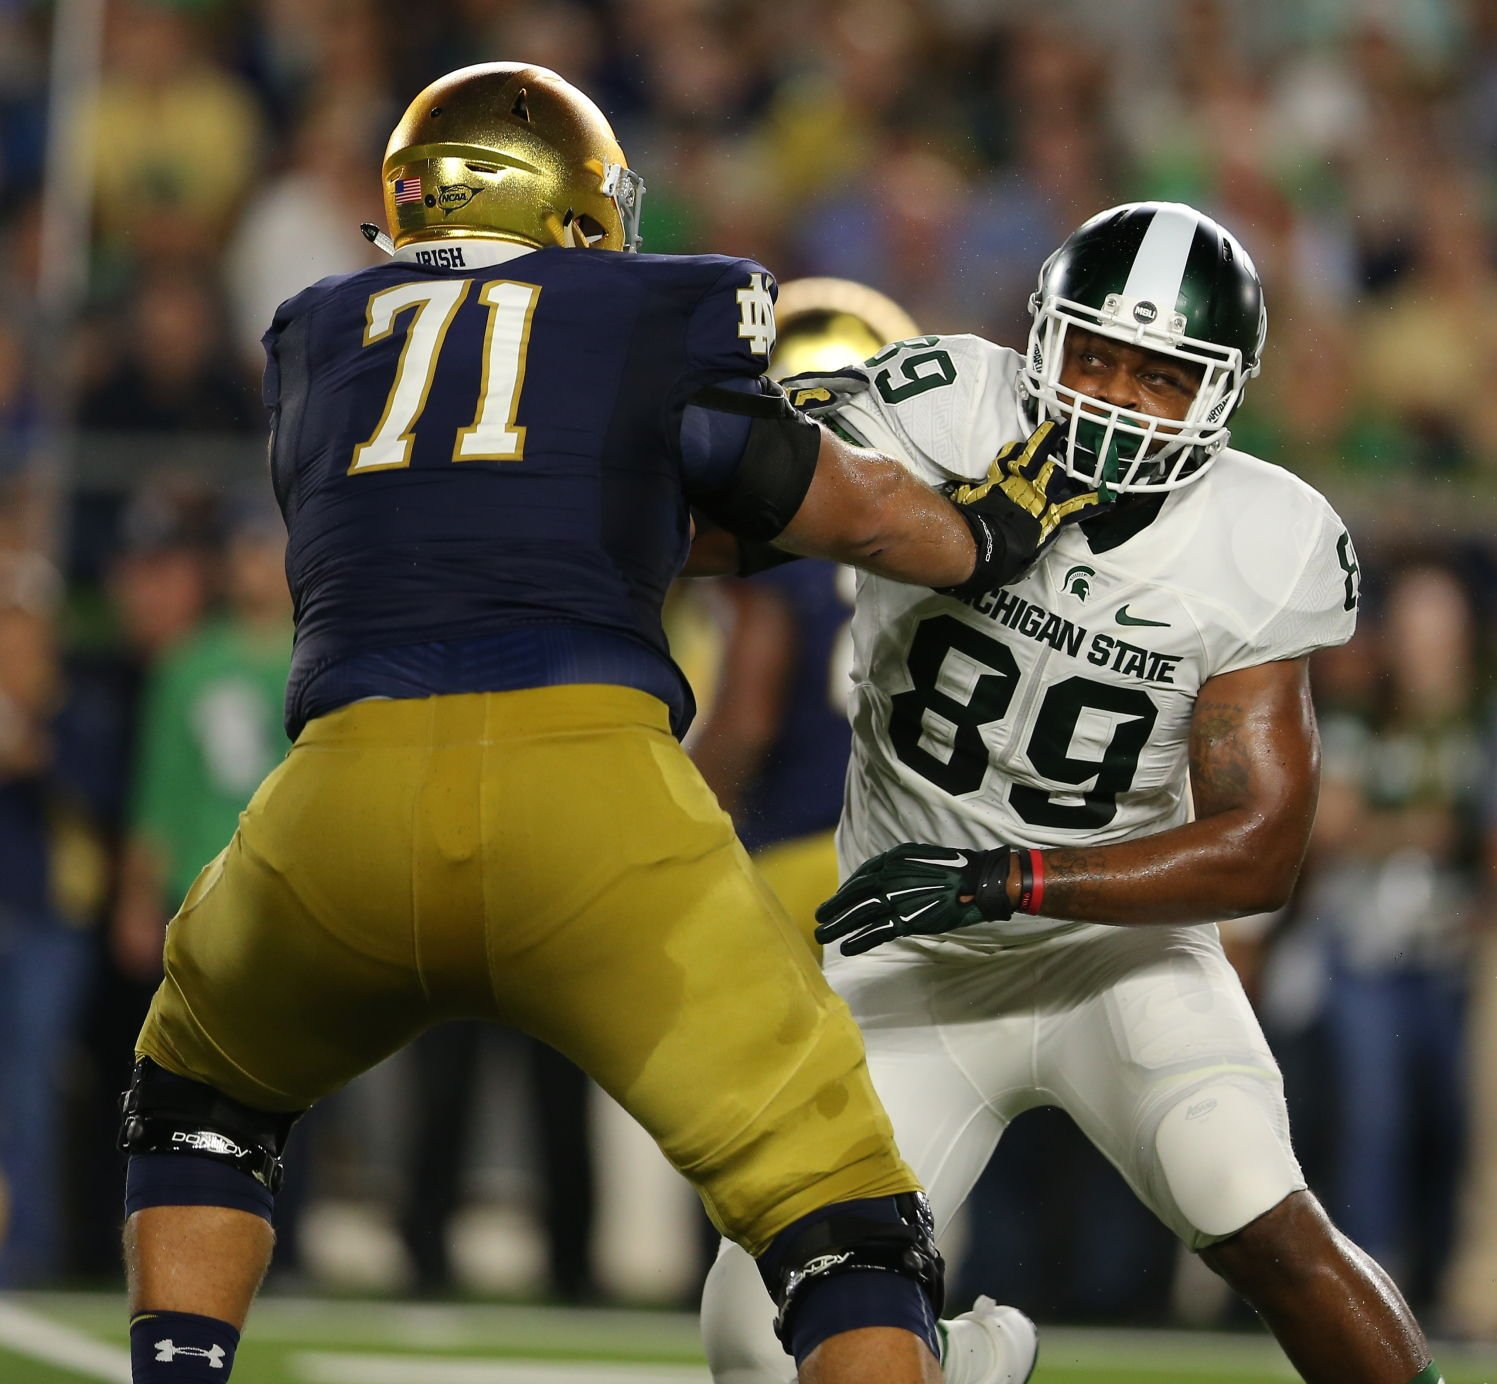 Michigan State senior defensive end and Perryville